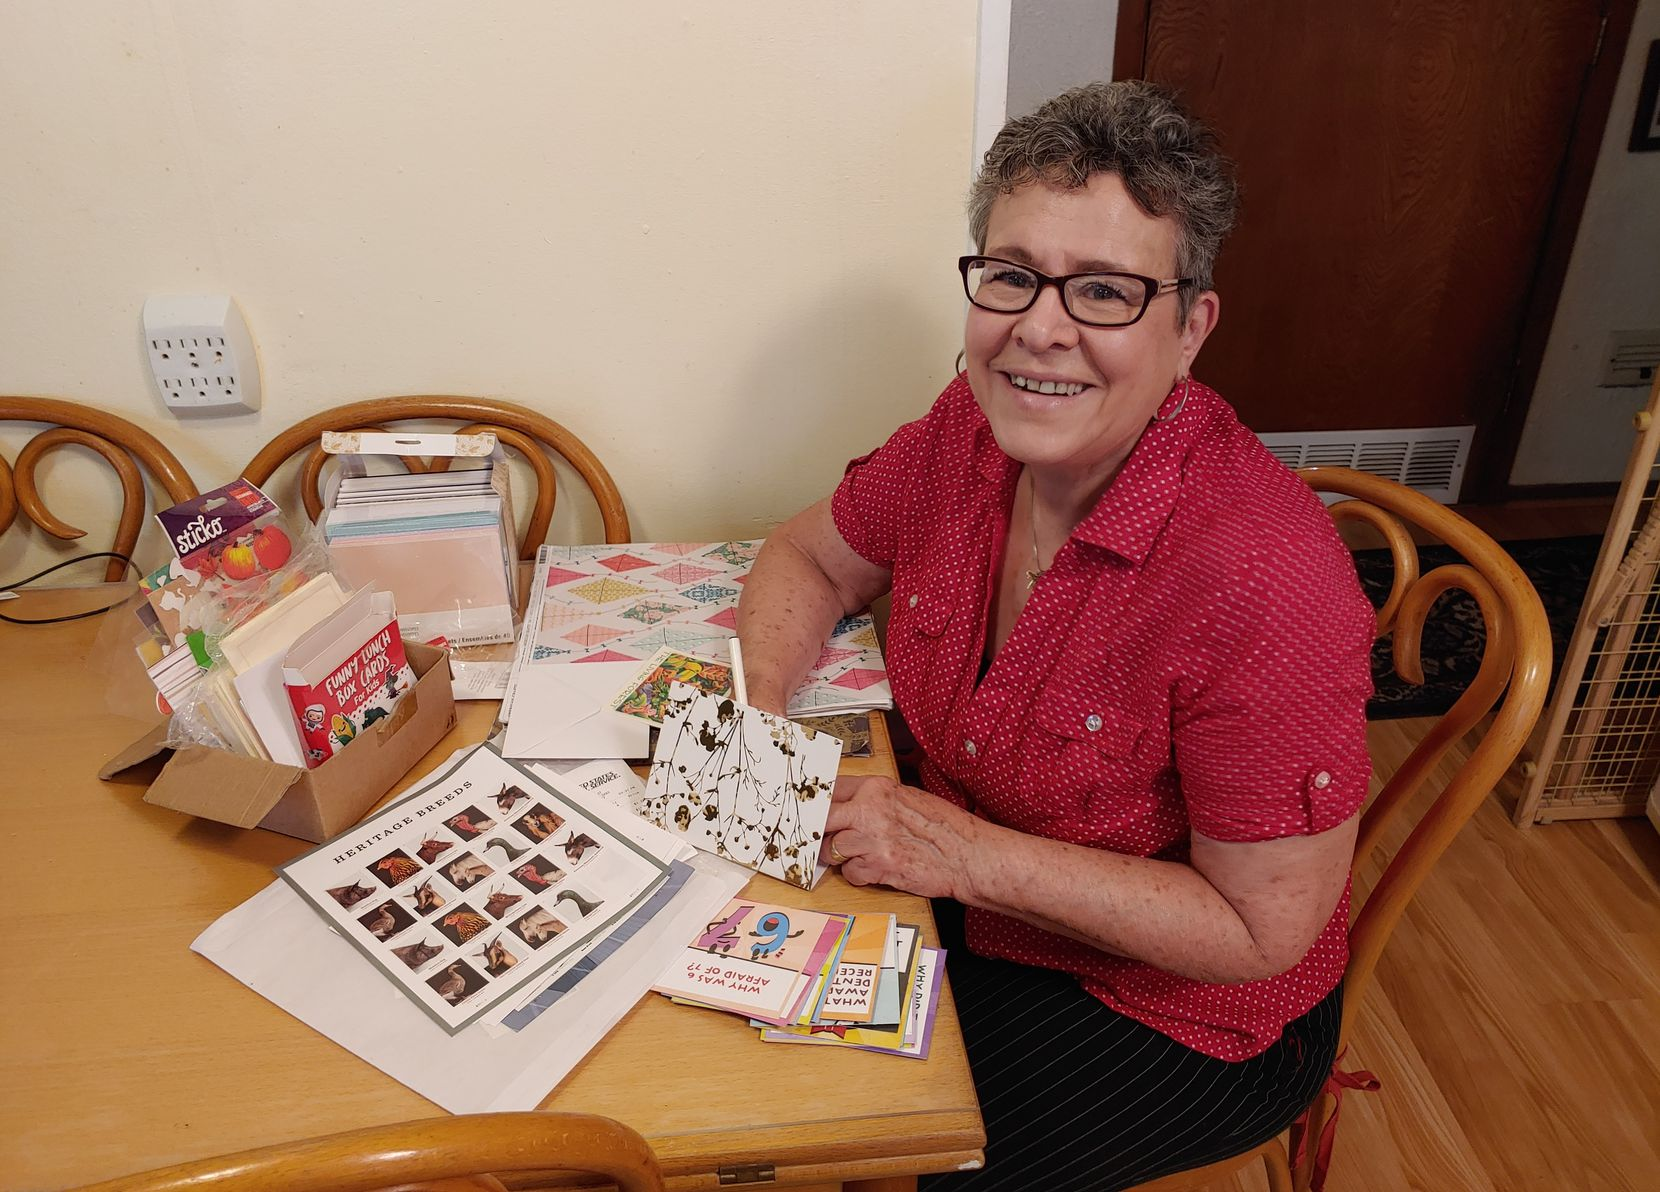 Barbara Berner of Irving frequently writes letters to strangers and loved ones alike. She spends about an hour writing each one.